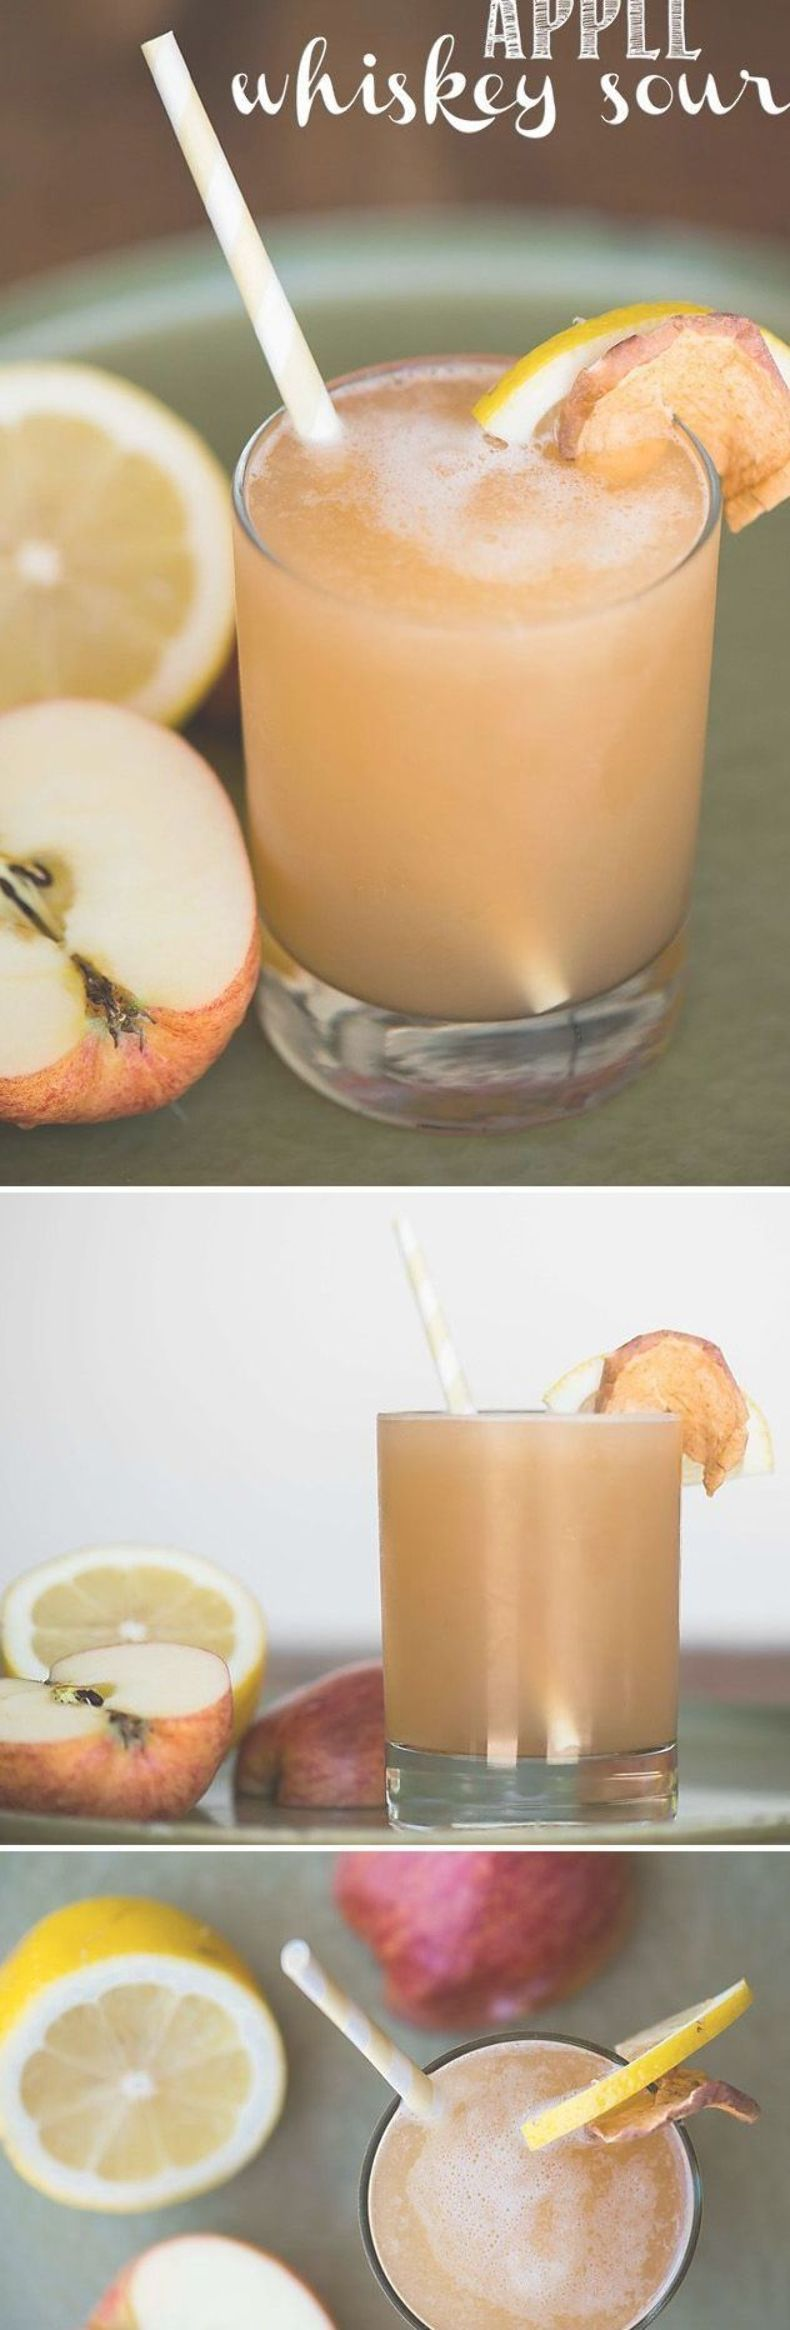 Apple Whiskey Sour, blended with apple juice, bourbon whiskey, lemon, and simple syrup, is an easy fall cocktail and a perfect Thanksgiving drink! #thanksgivingdrinksalcohol